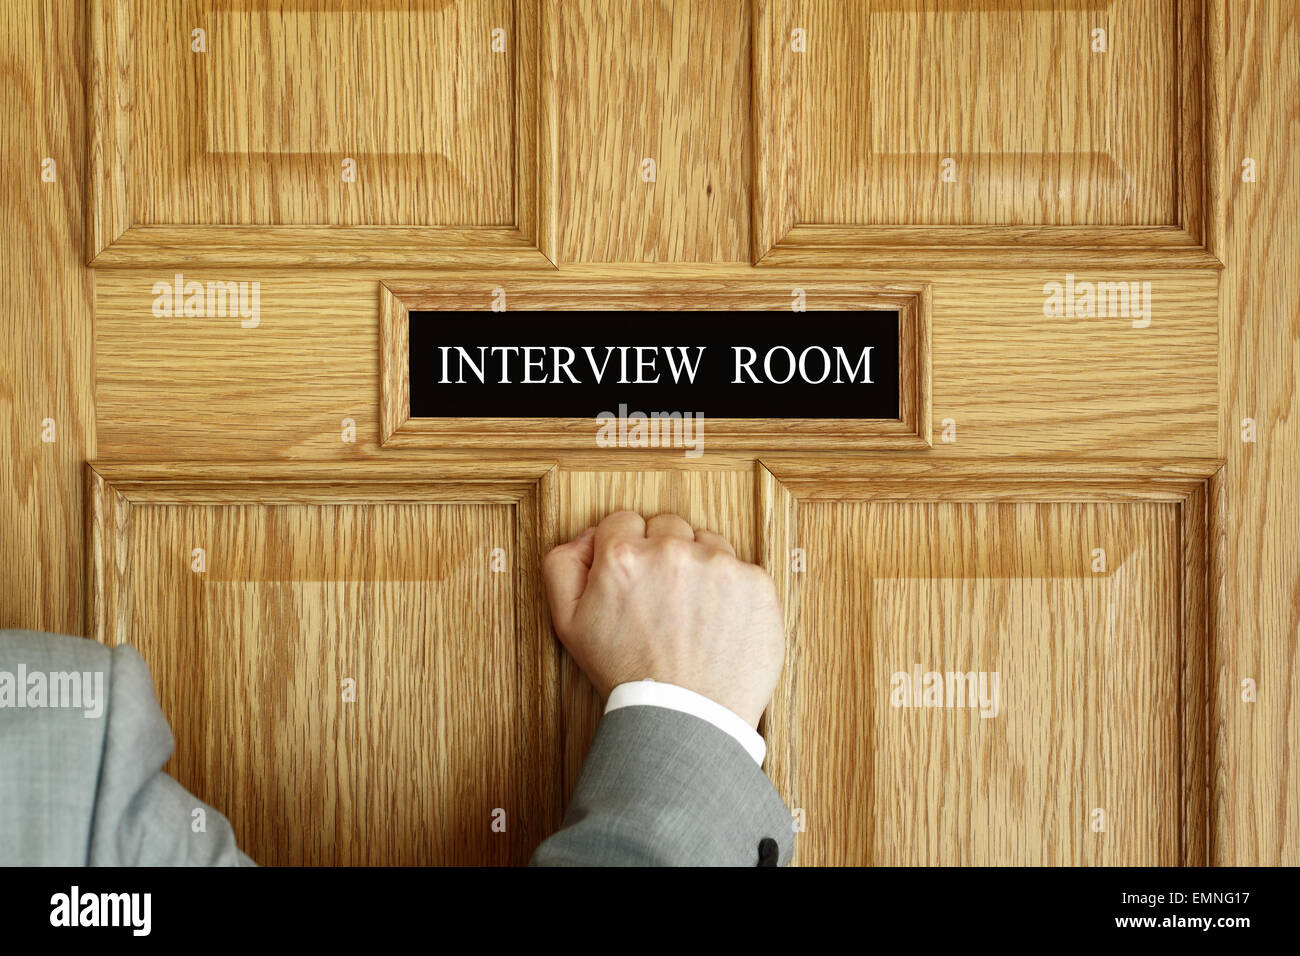 Attending an interview - Stock Image